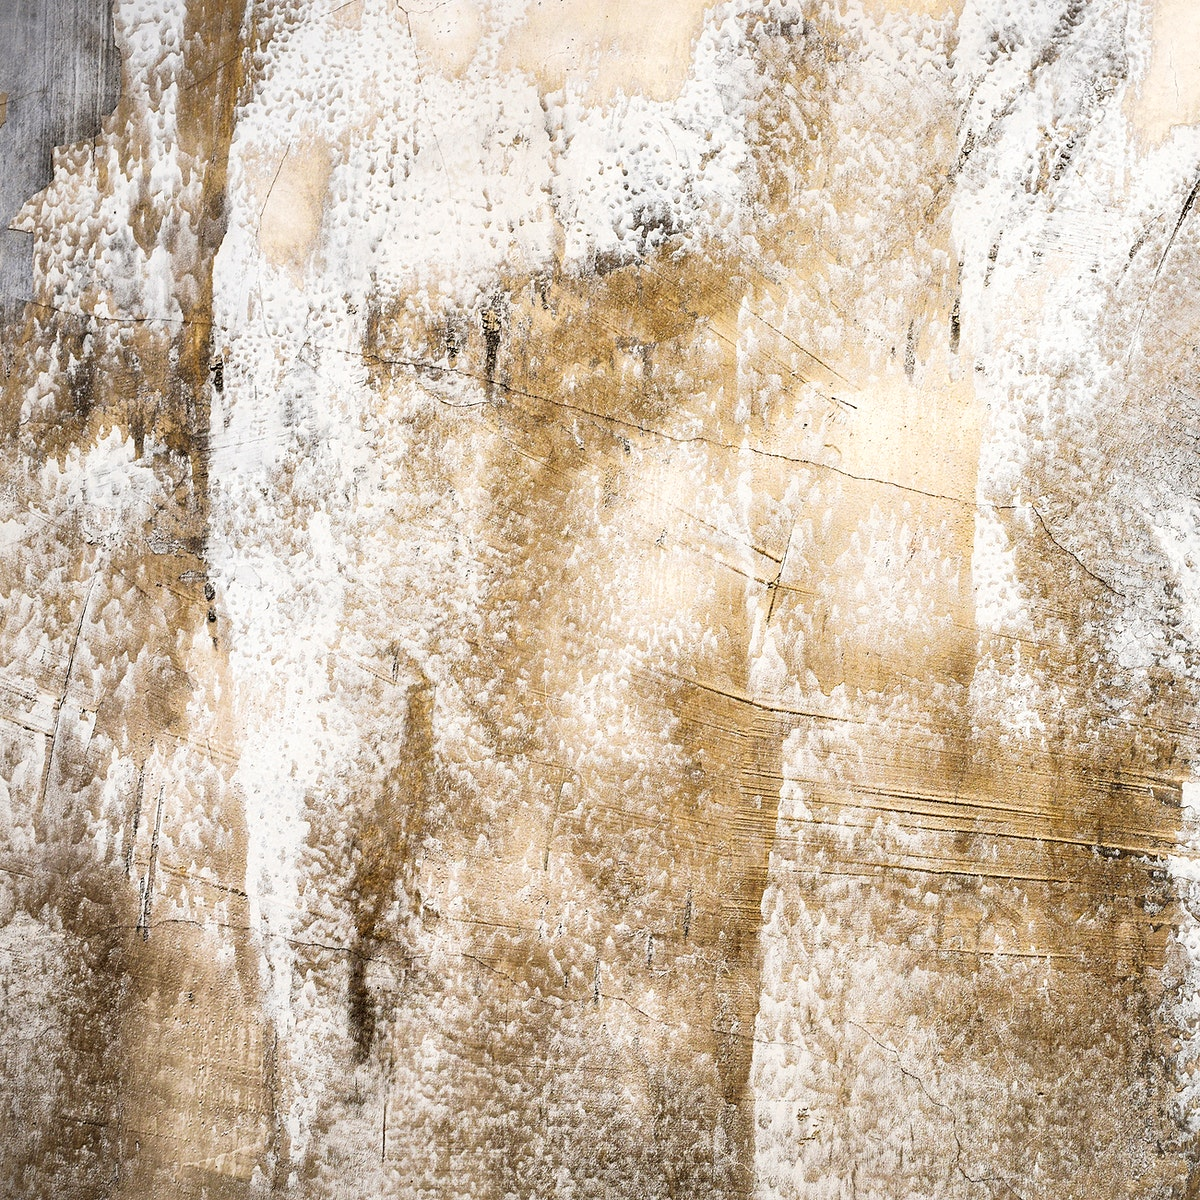 Cracked rustic brown concrete textured background